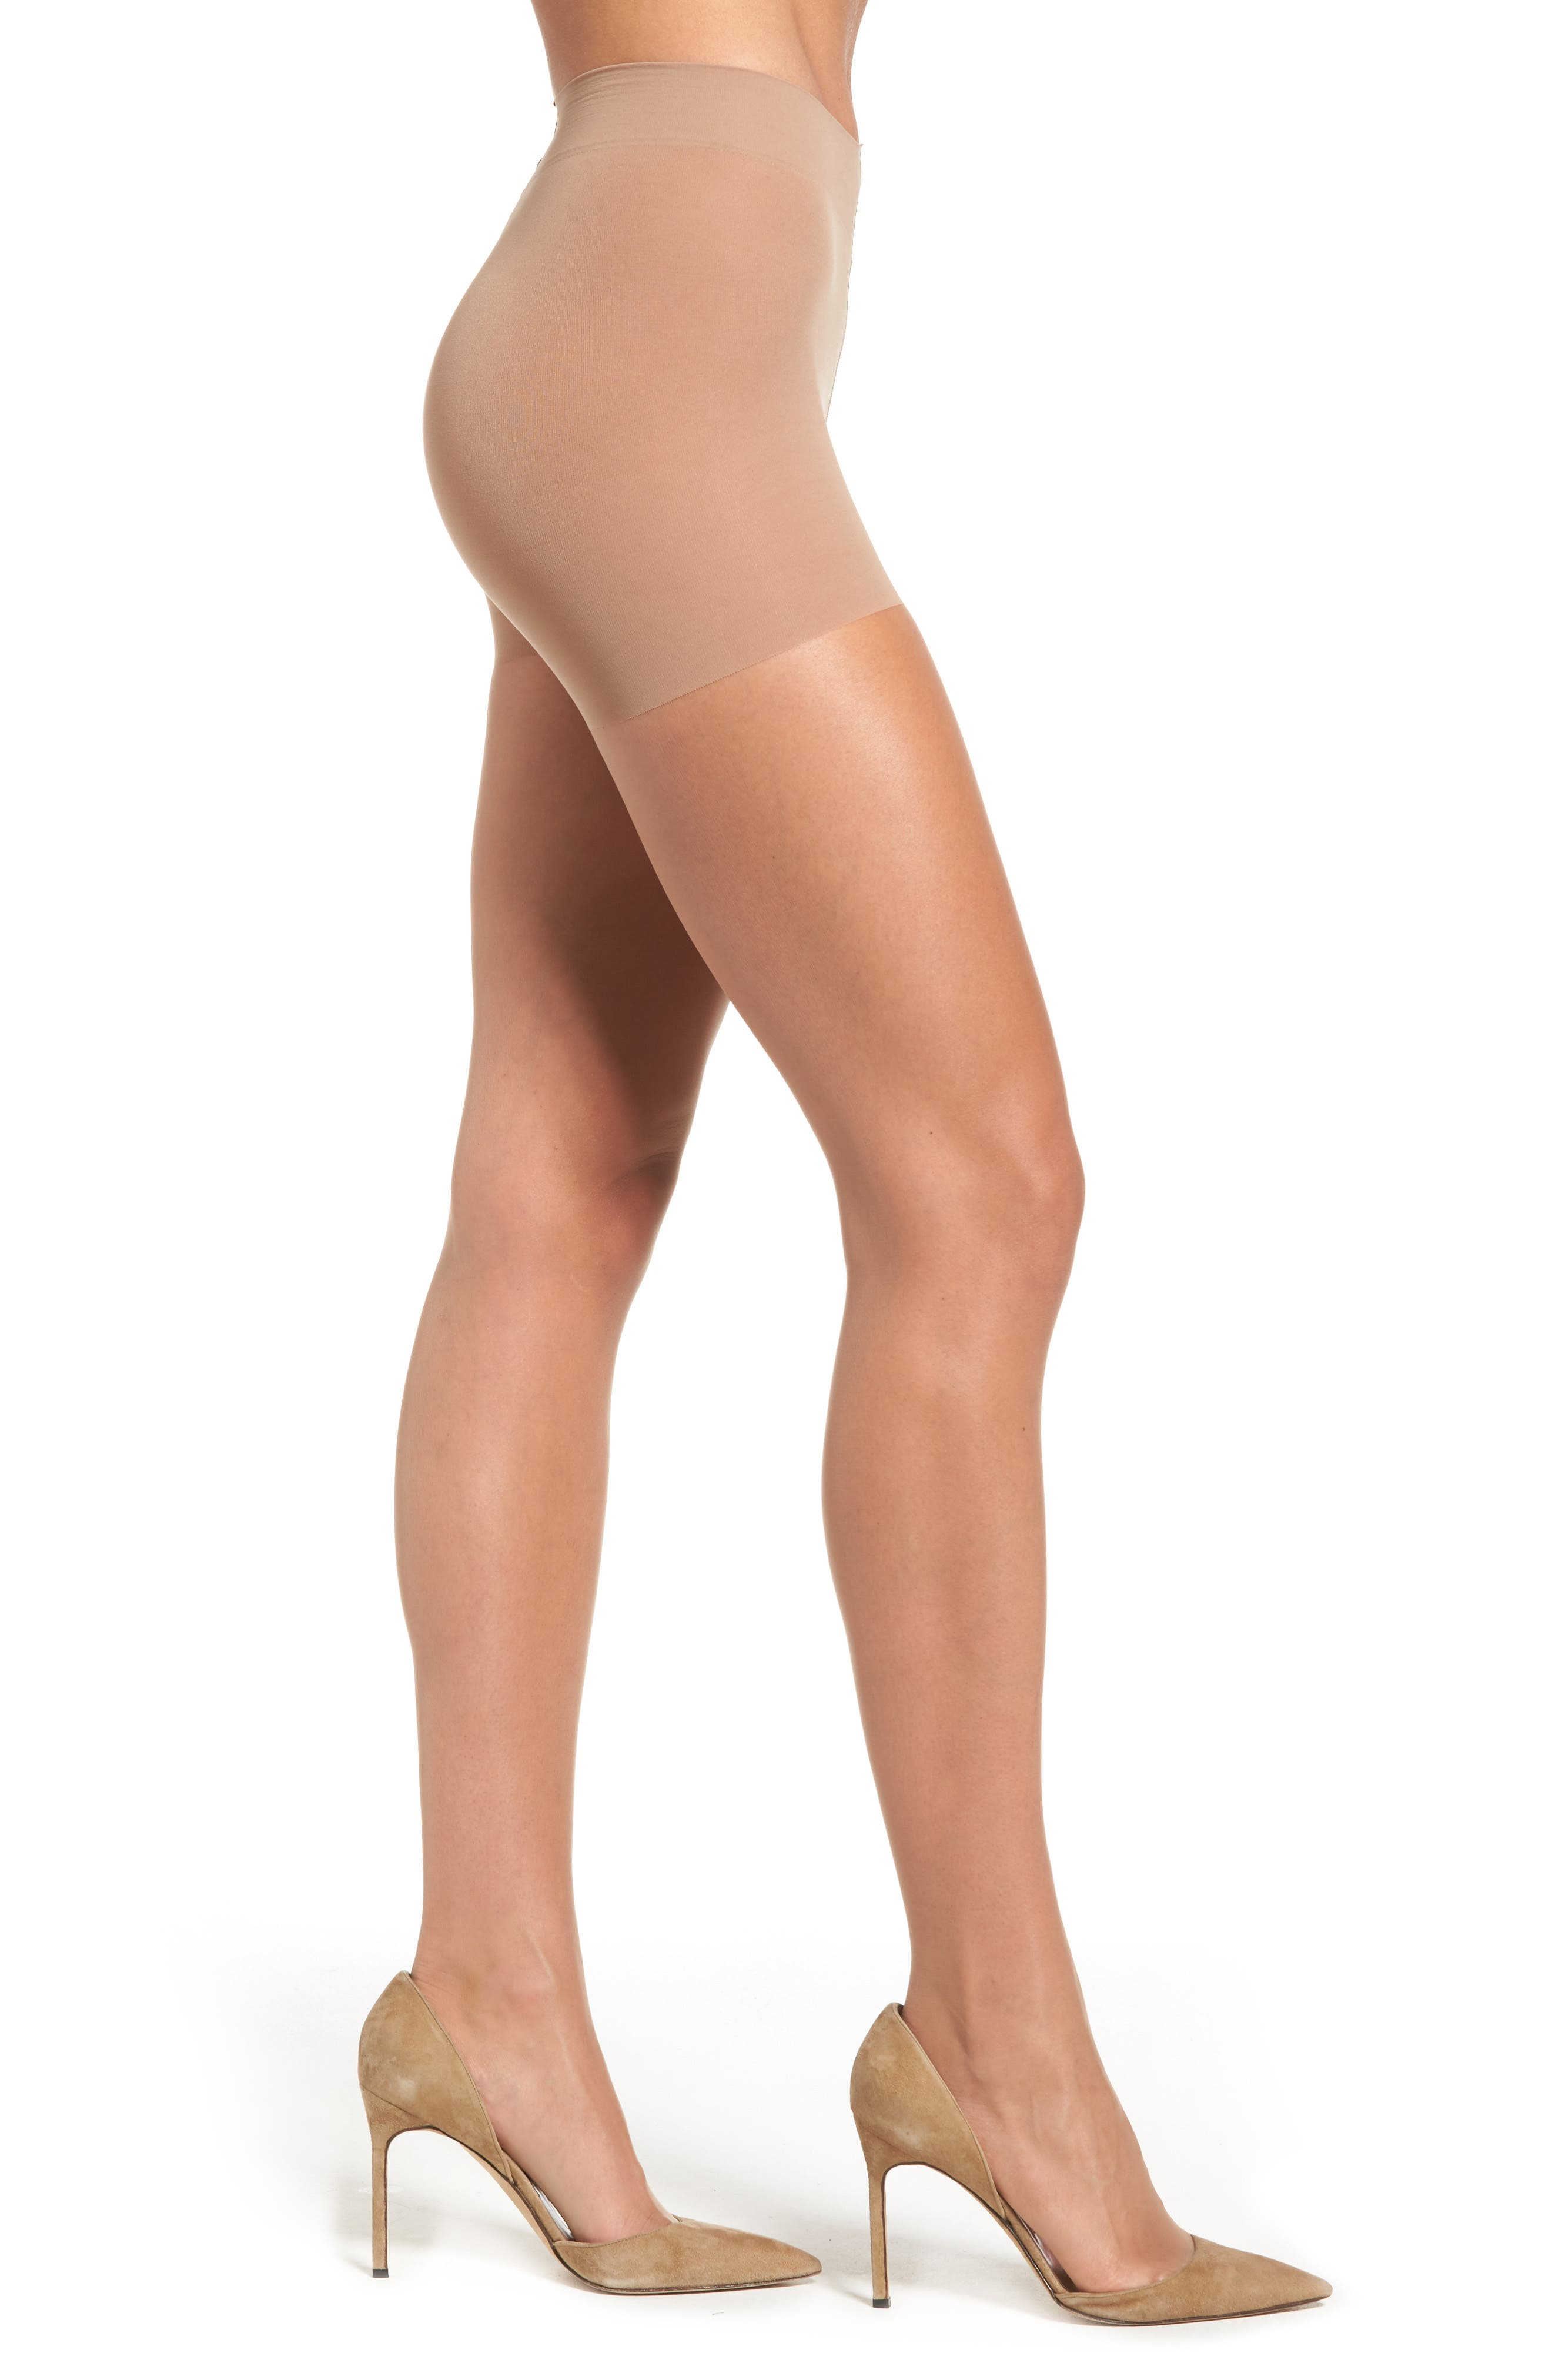 Perfect Nudes Pantyhose,                             Main thumbnail 1, color,                             BEIGE/ NUDE